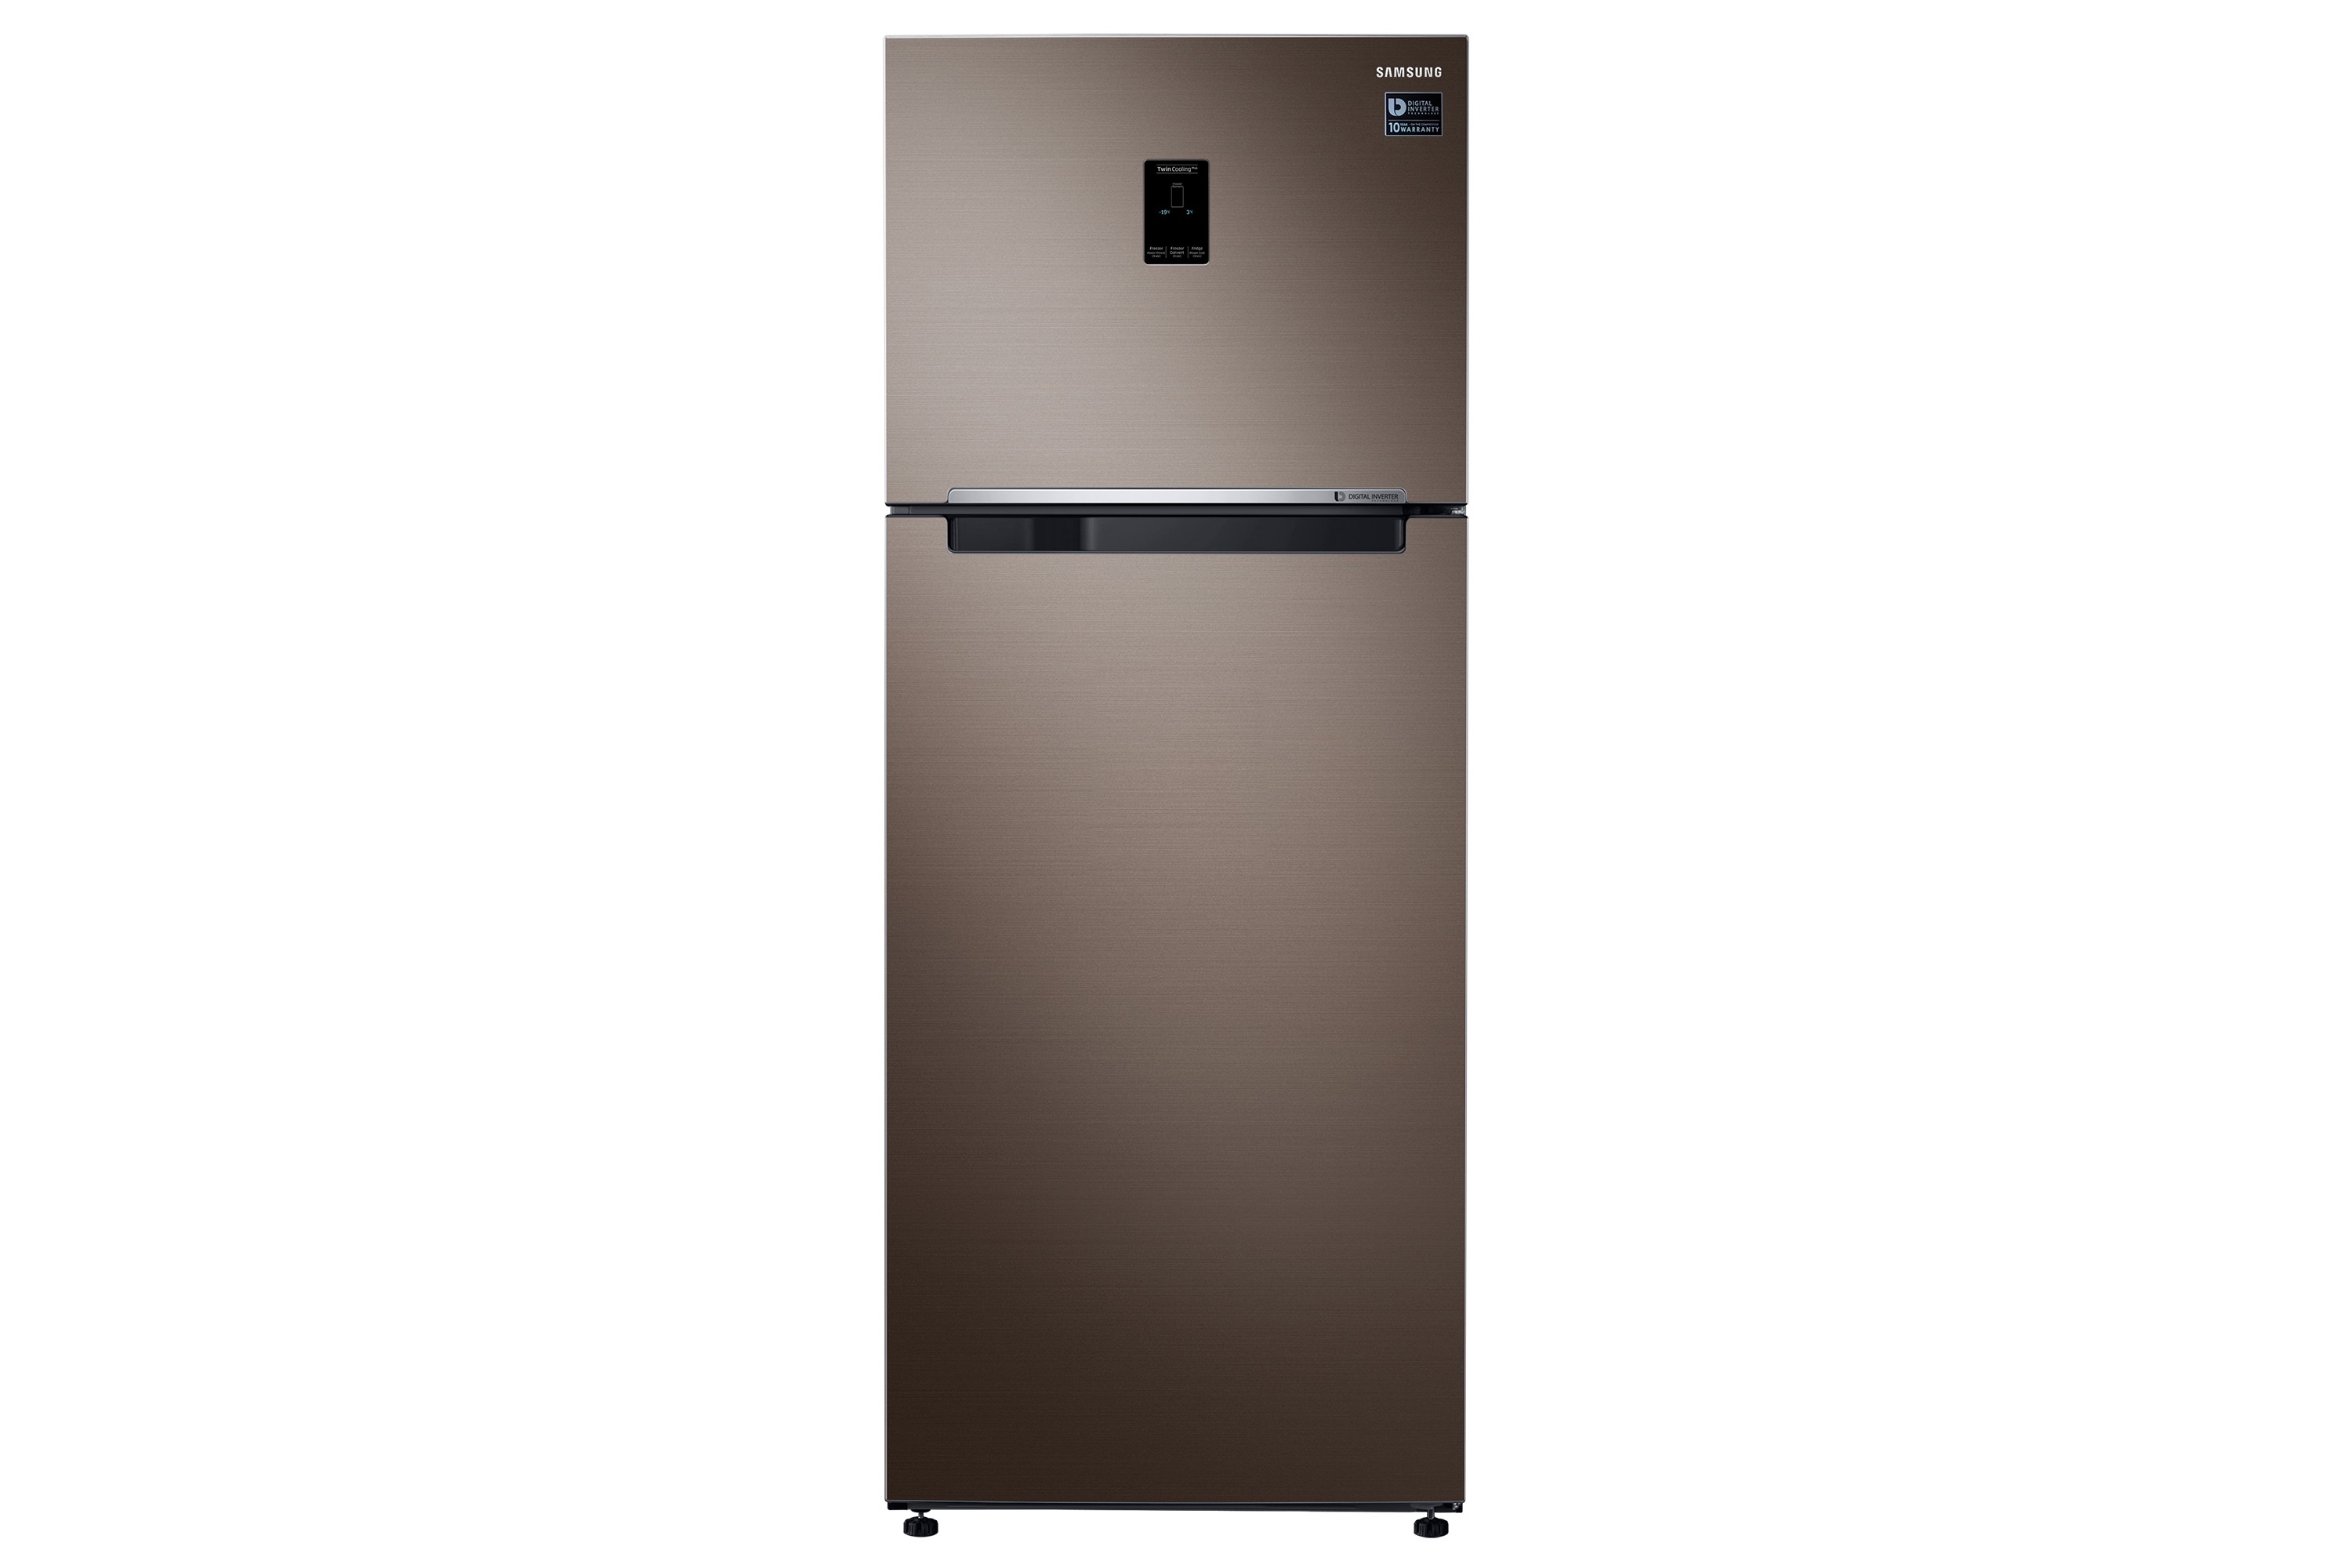 Samsung RT46K237DX 453-litre Twin Cooling Plus™ Top Mount Freezer, 3 Ticks Energy Rating